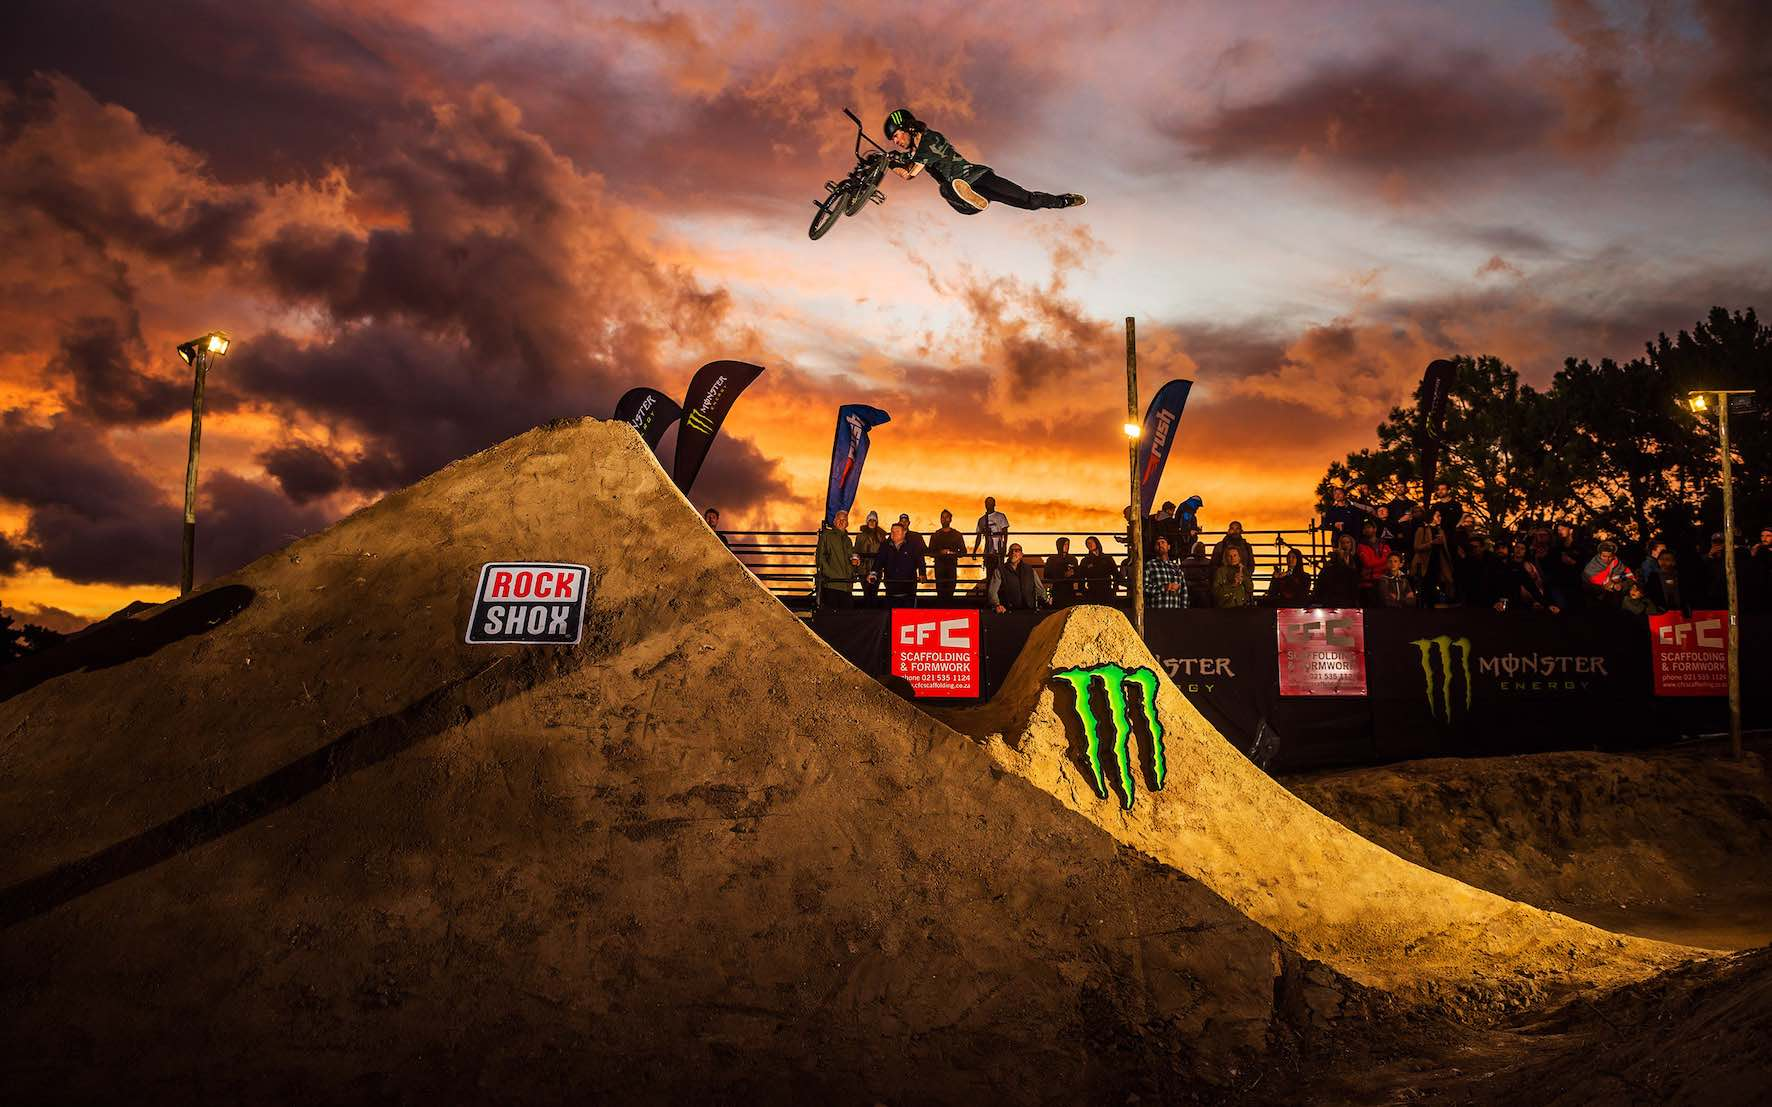 Mike Varga taking 2nd place in The Night Harvest 2019 BMX dirt jump contest